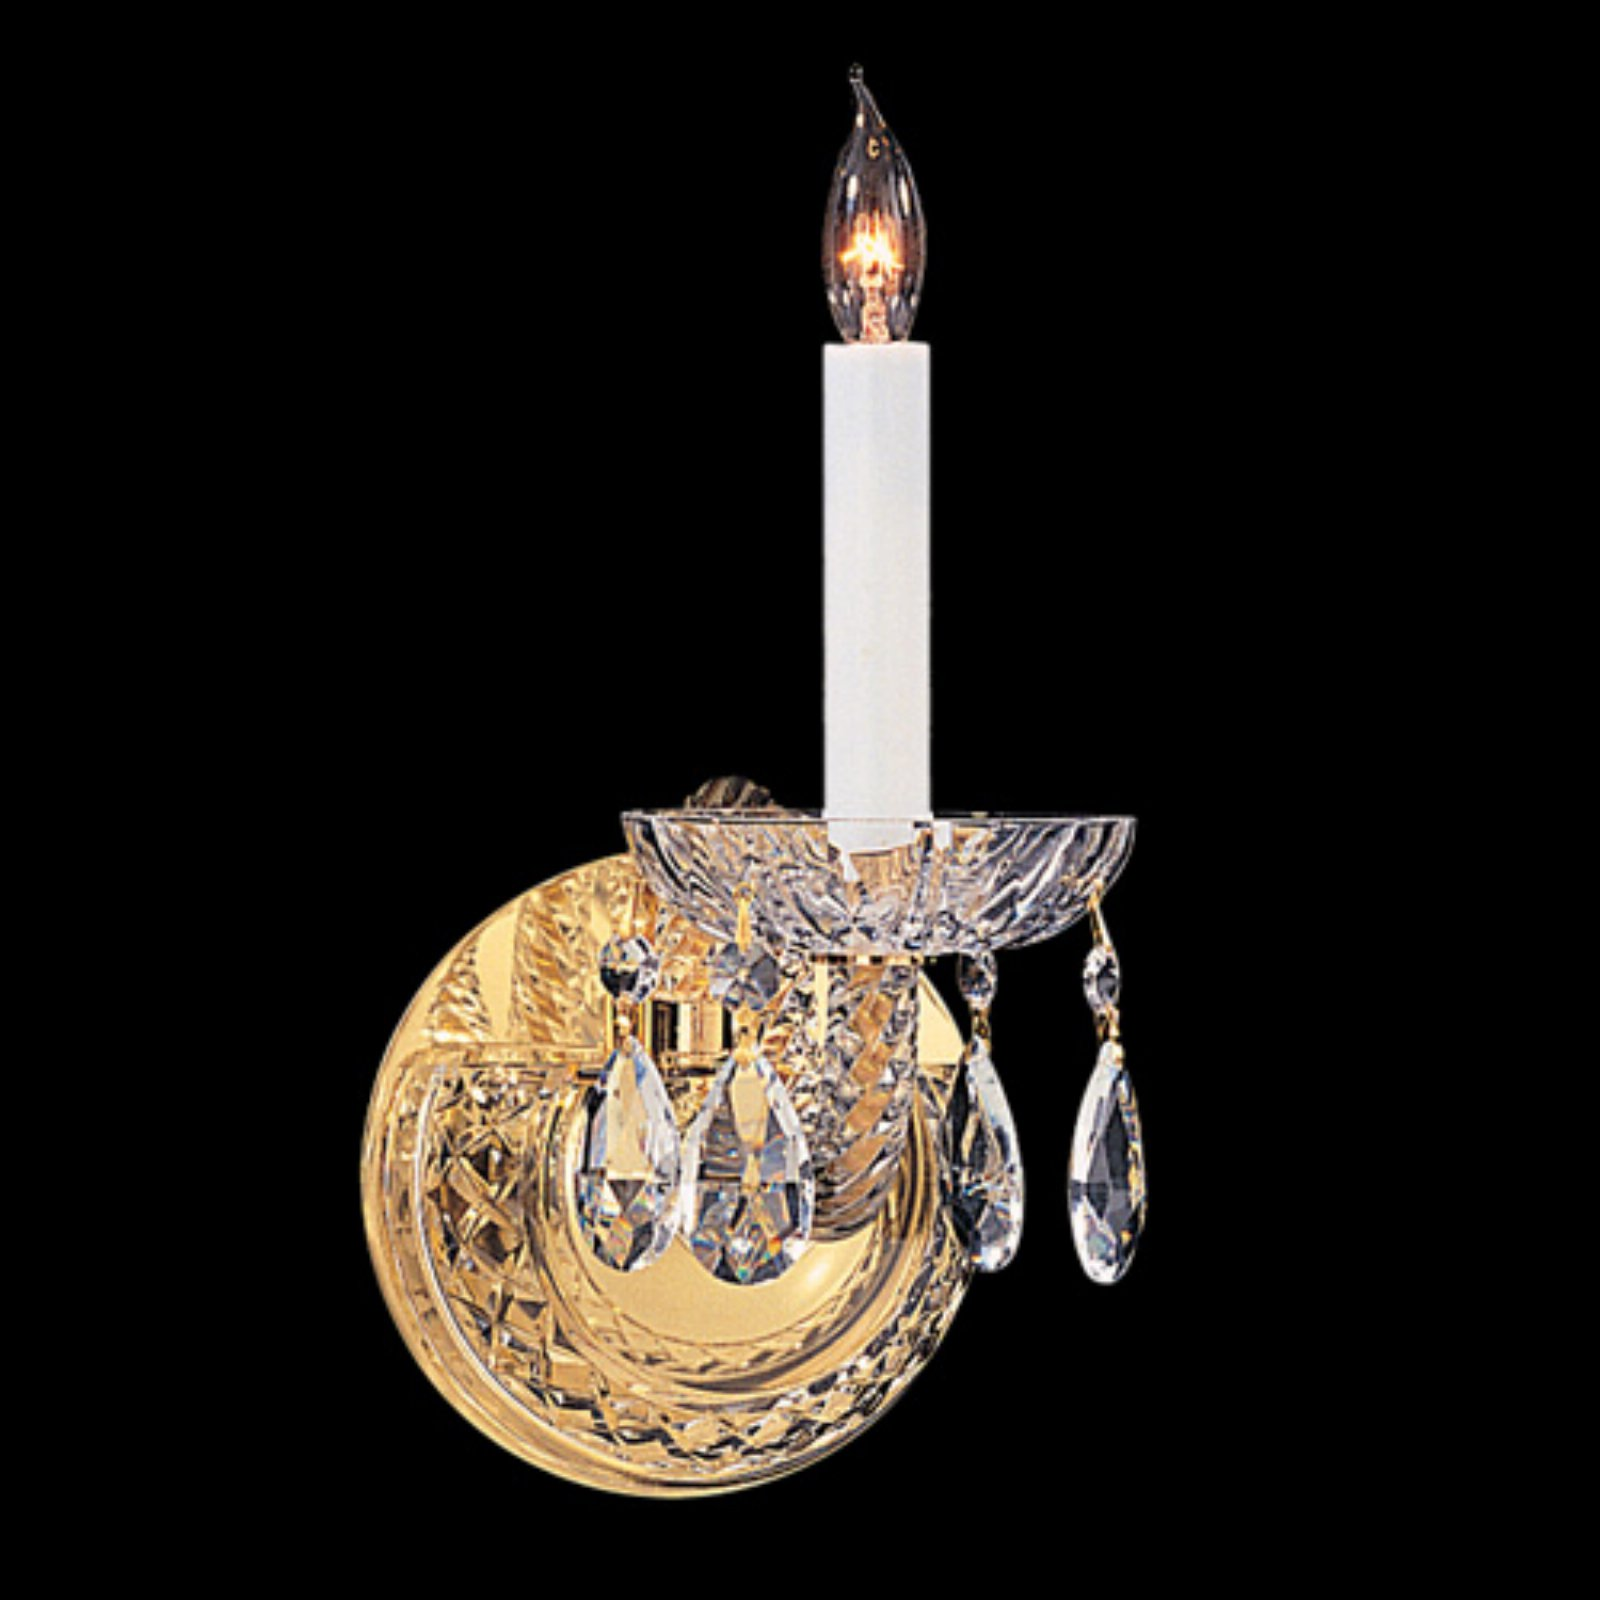 Crystorama 1121-PB-CL-S Traditional Swarovski Elements Crystal Wall Sconce 5W in by Crystorama